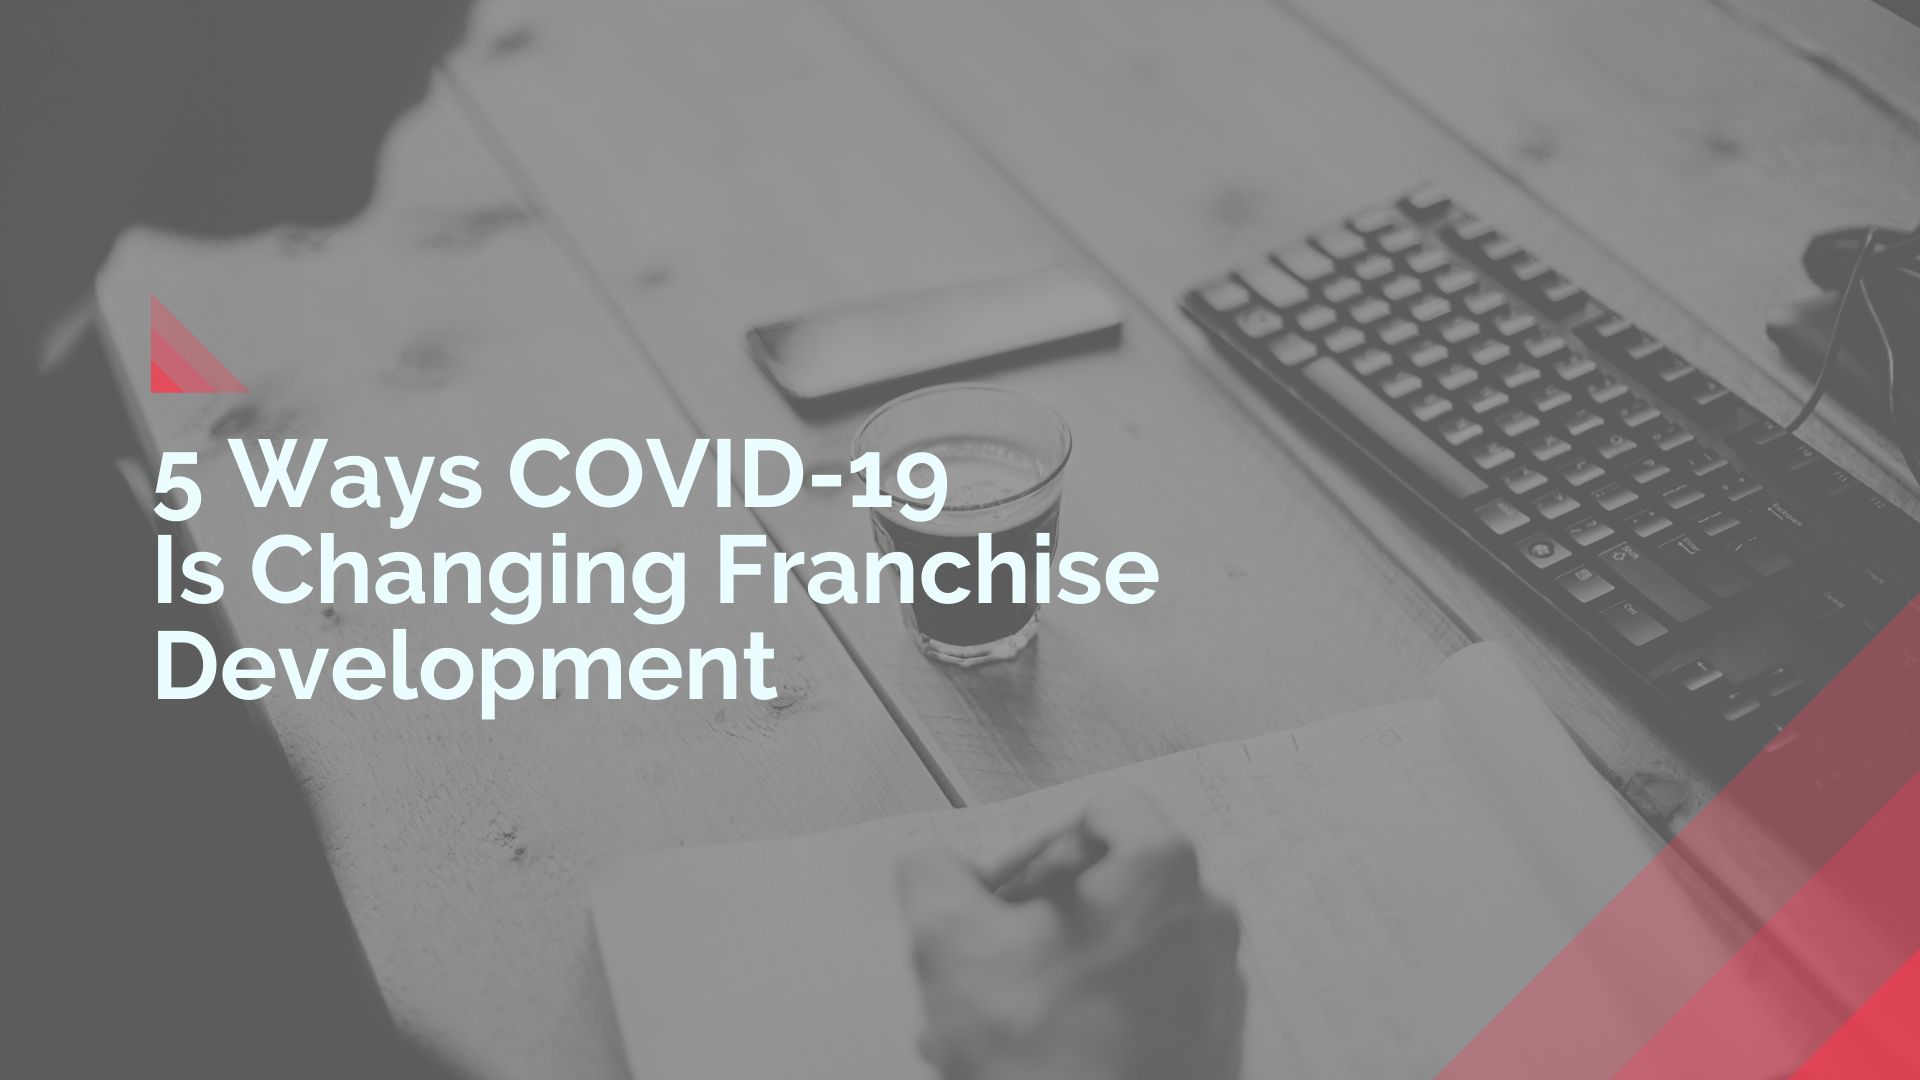 5 Ways COVID-19 Is Changing Franchise Development